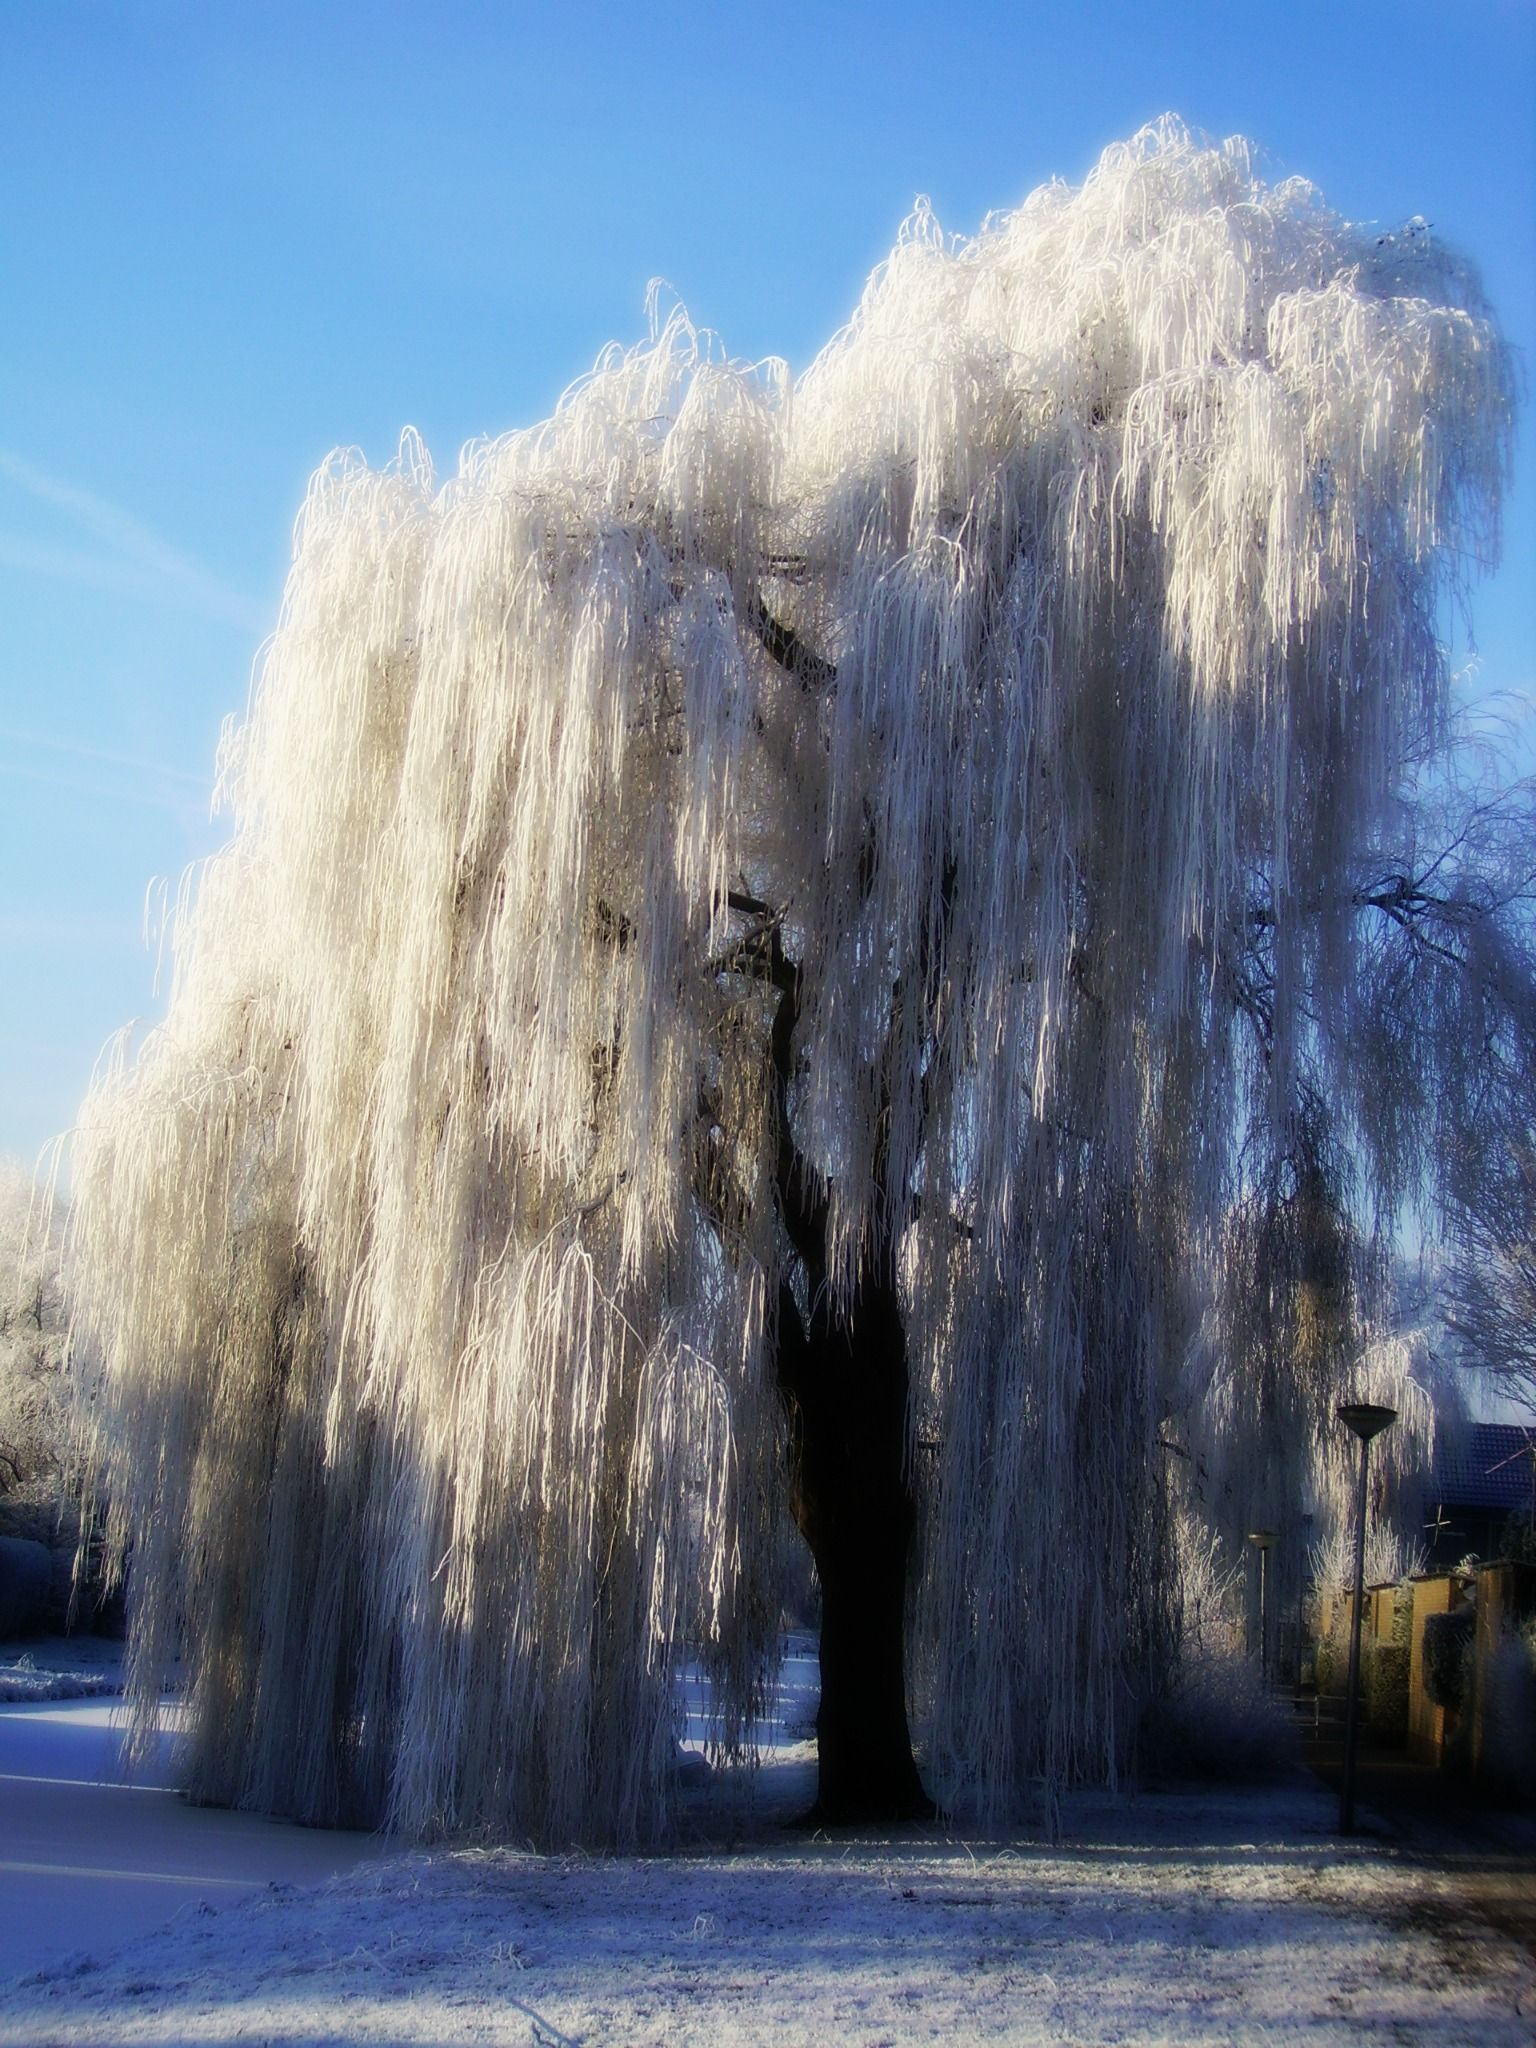 Iced Weeping Willow